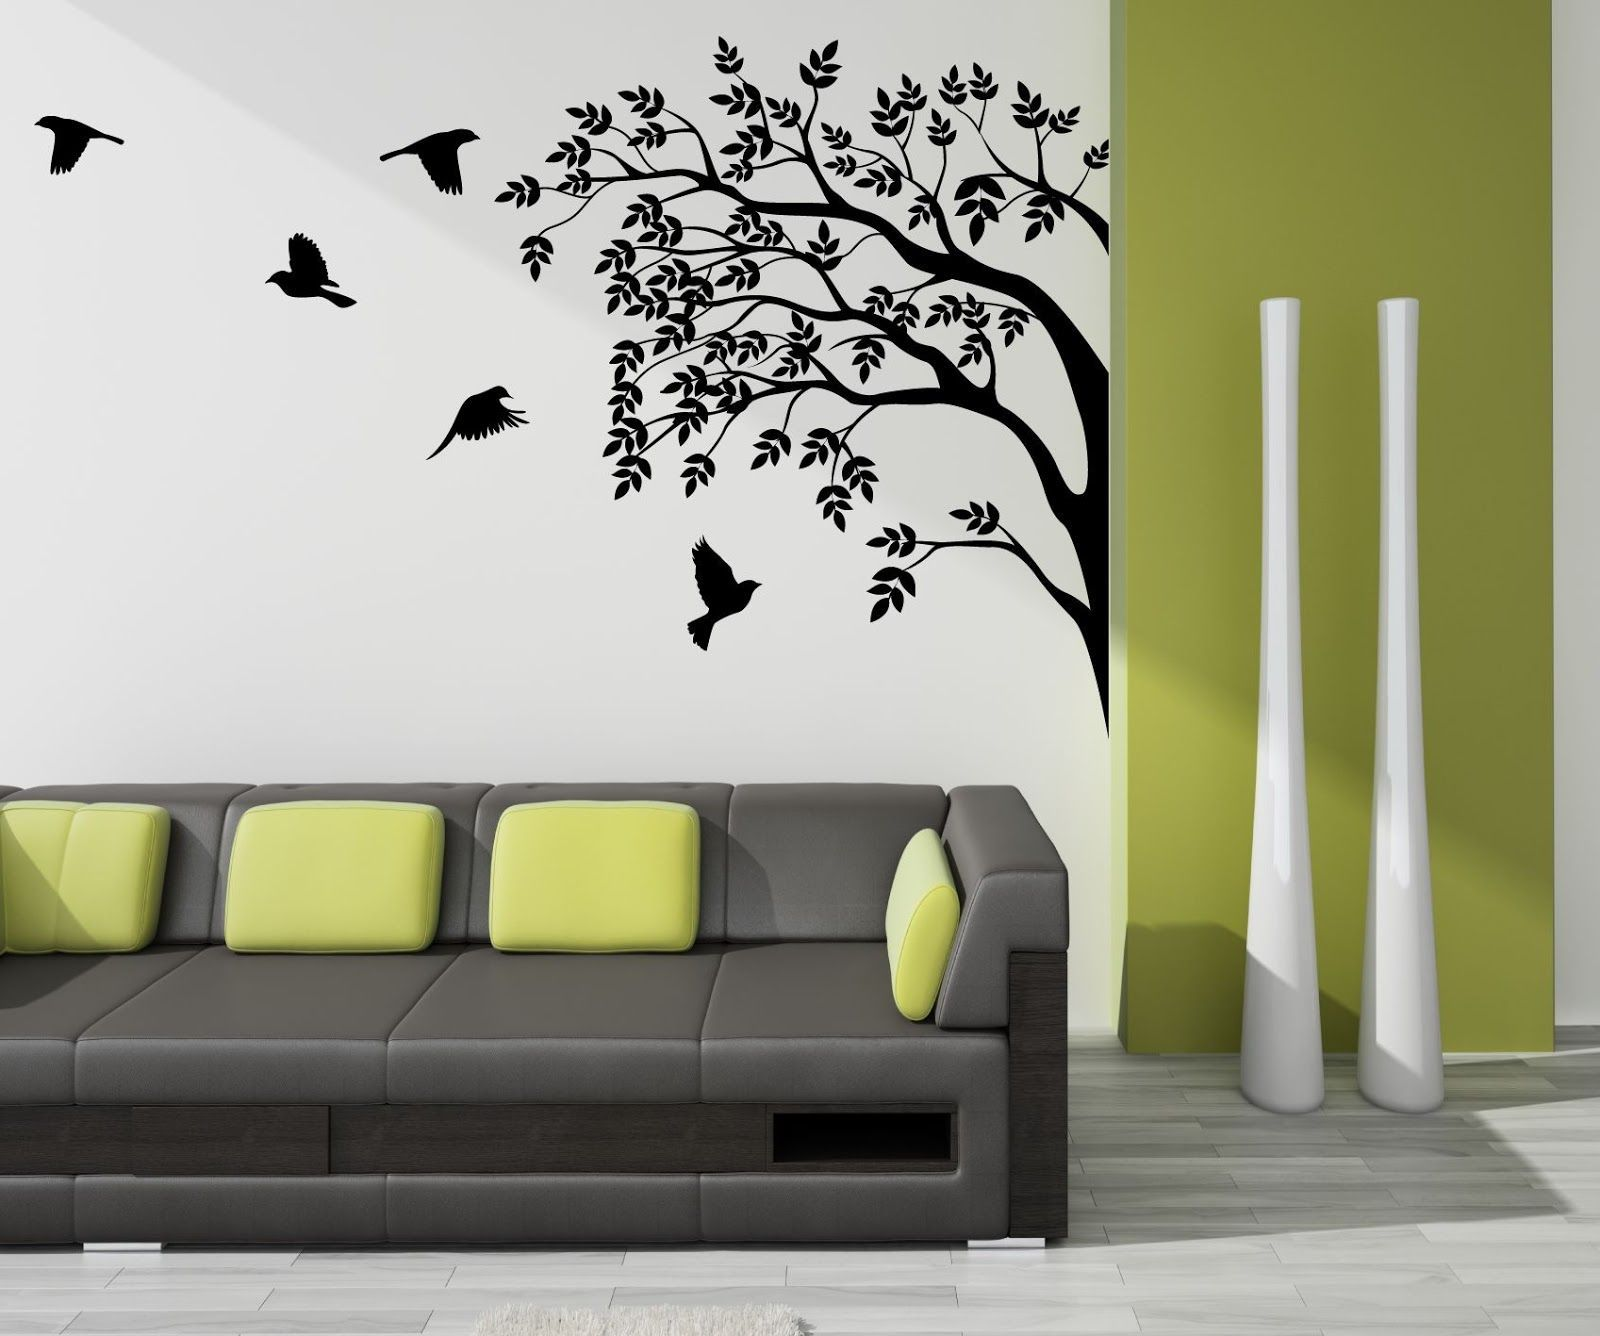 Bedroom Wall Art Trees Tree Painted On Wall In Corner Google Search Baby Boy